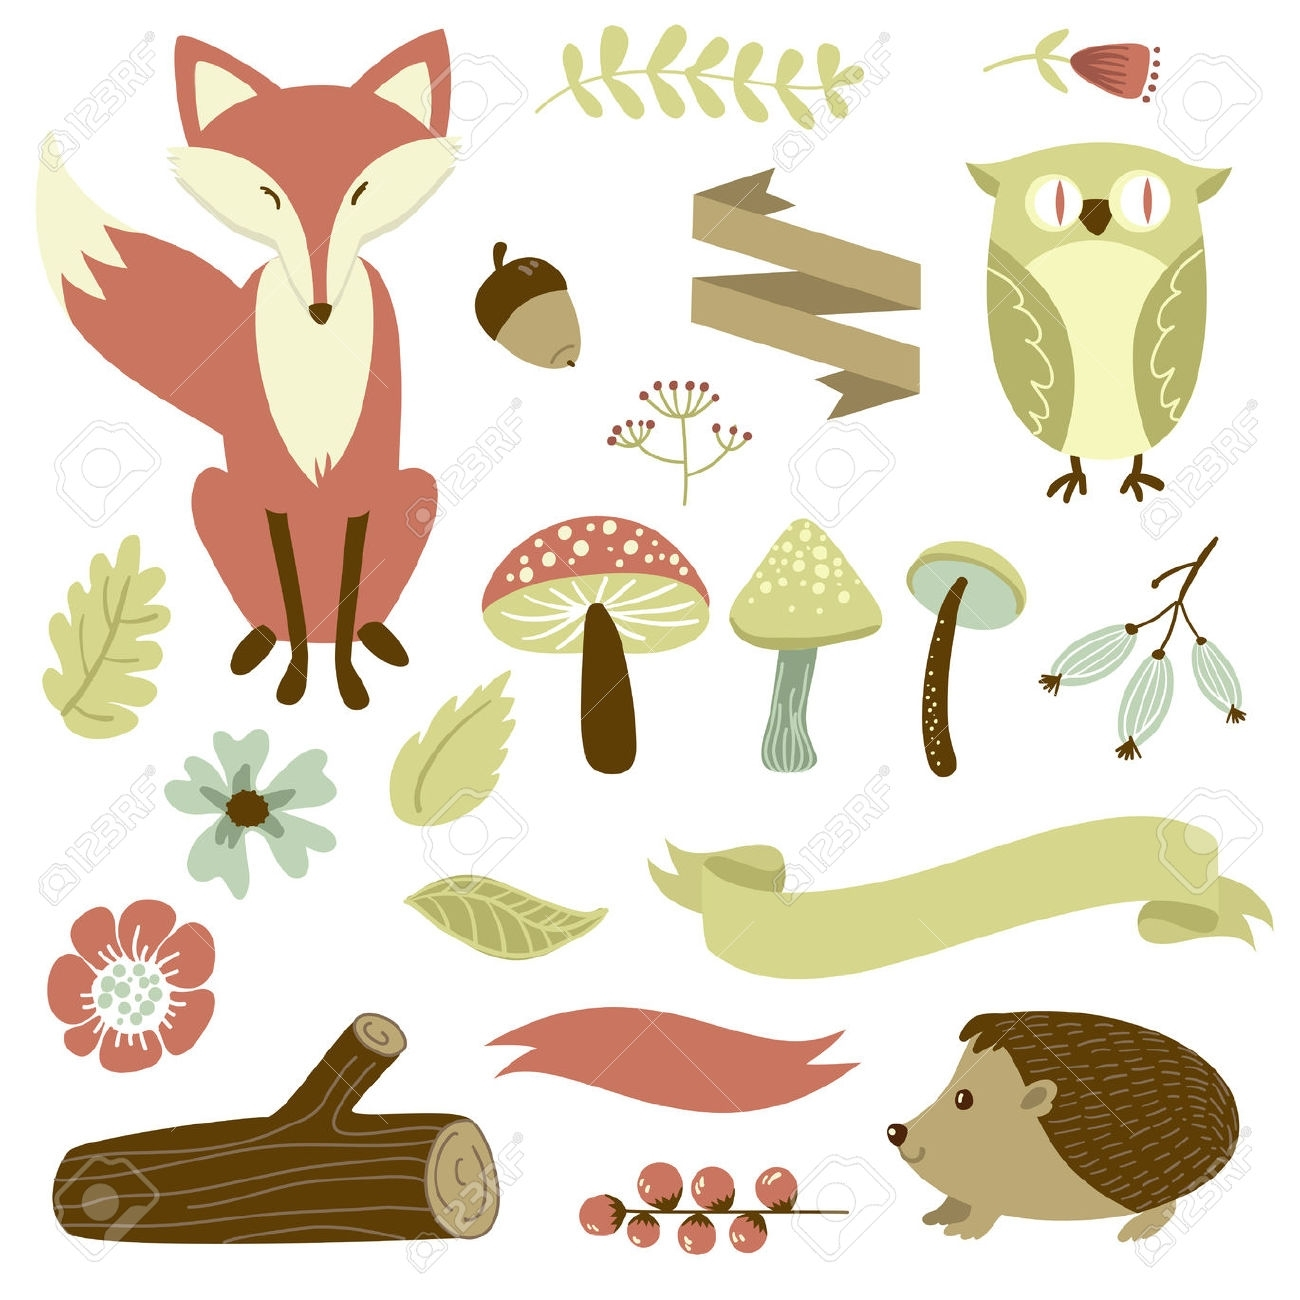 Free Printable Forest Animal Silhouettes - Google Search pertaining to 2017 Fabric Animal Silhouette Wall Art